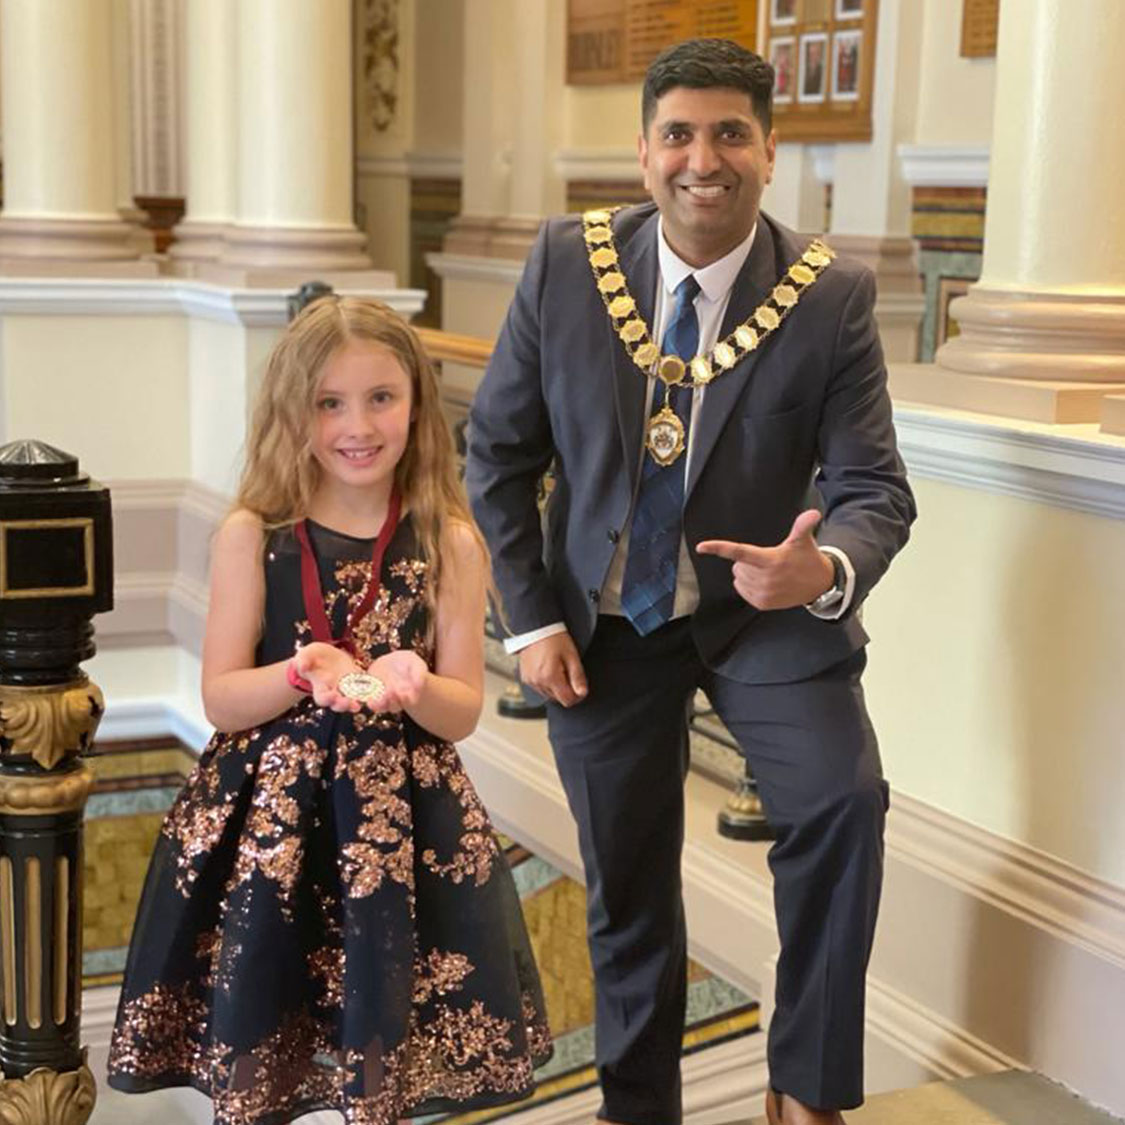 A photo of Annie stood next to the mayor holding her mayor's medal.